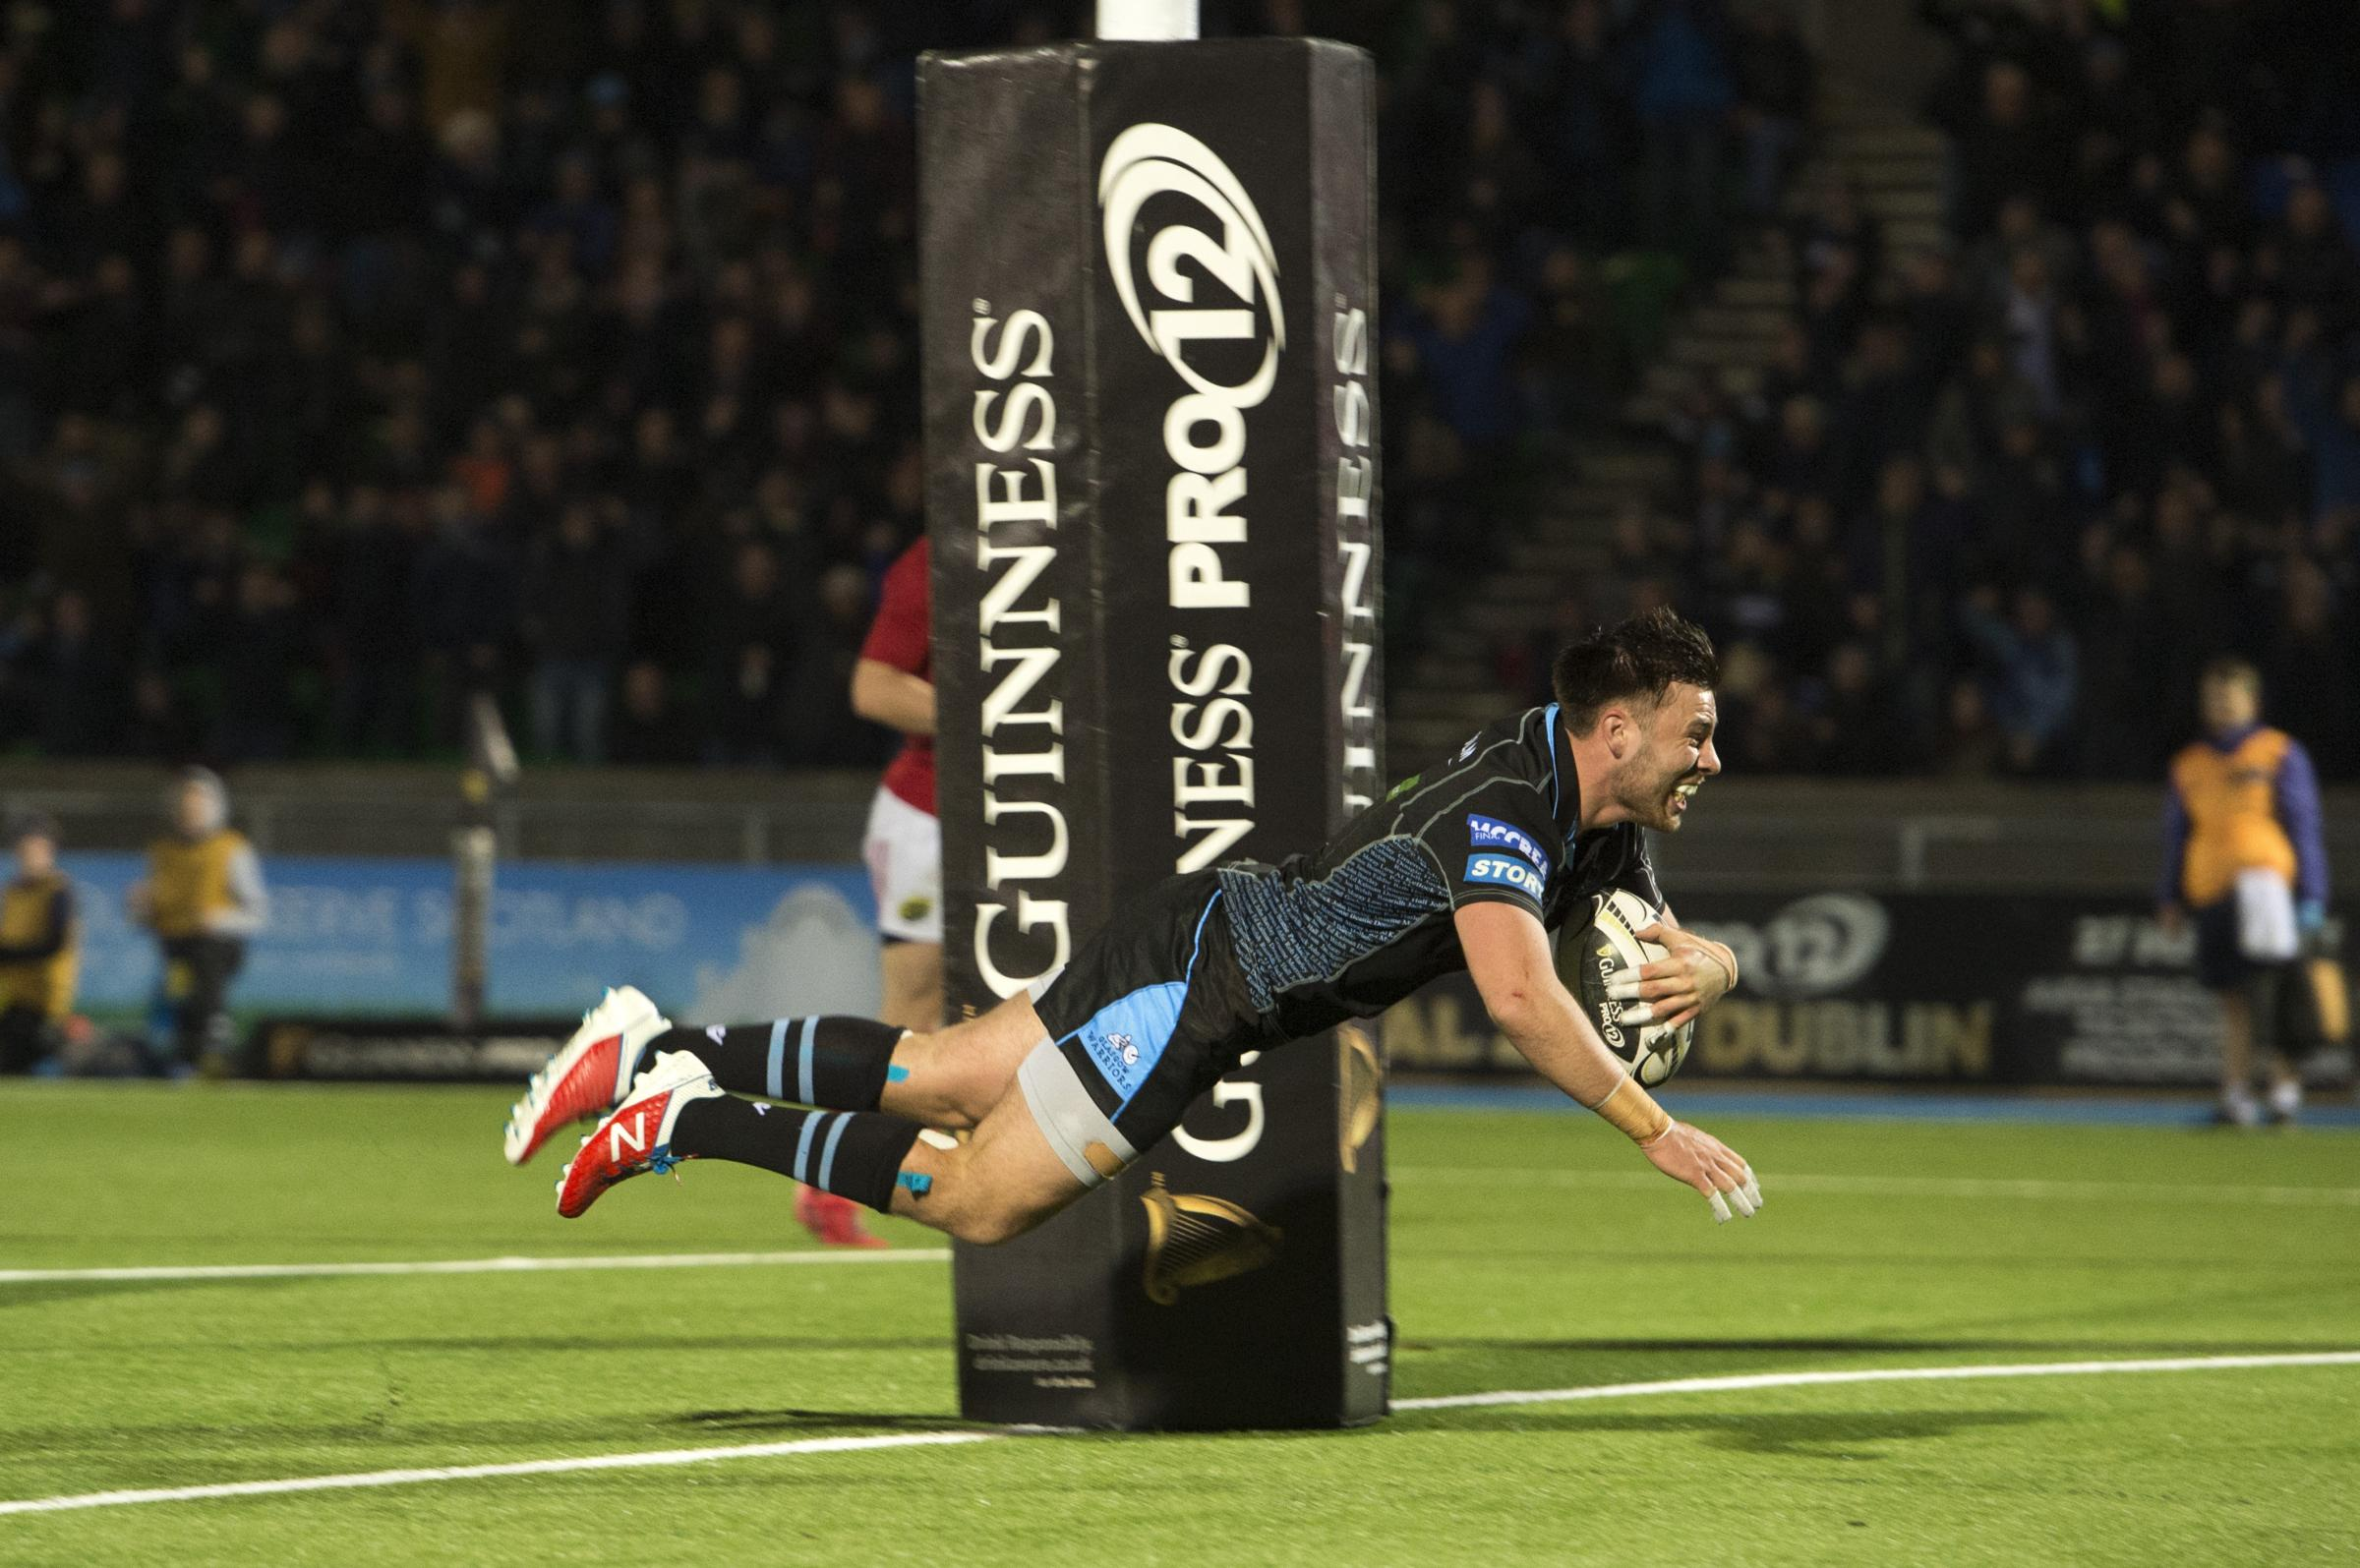 02/12/16 GUINNESS PRO12  .  GLASGOW WARRIORS v MUNSTER  .  SCOTSTOUN STADIUM - GLASGOW  .  Glasgow Warriors' Ali Price scores his side's first try.